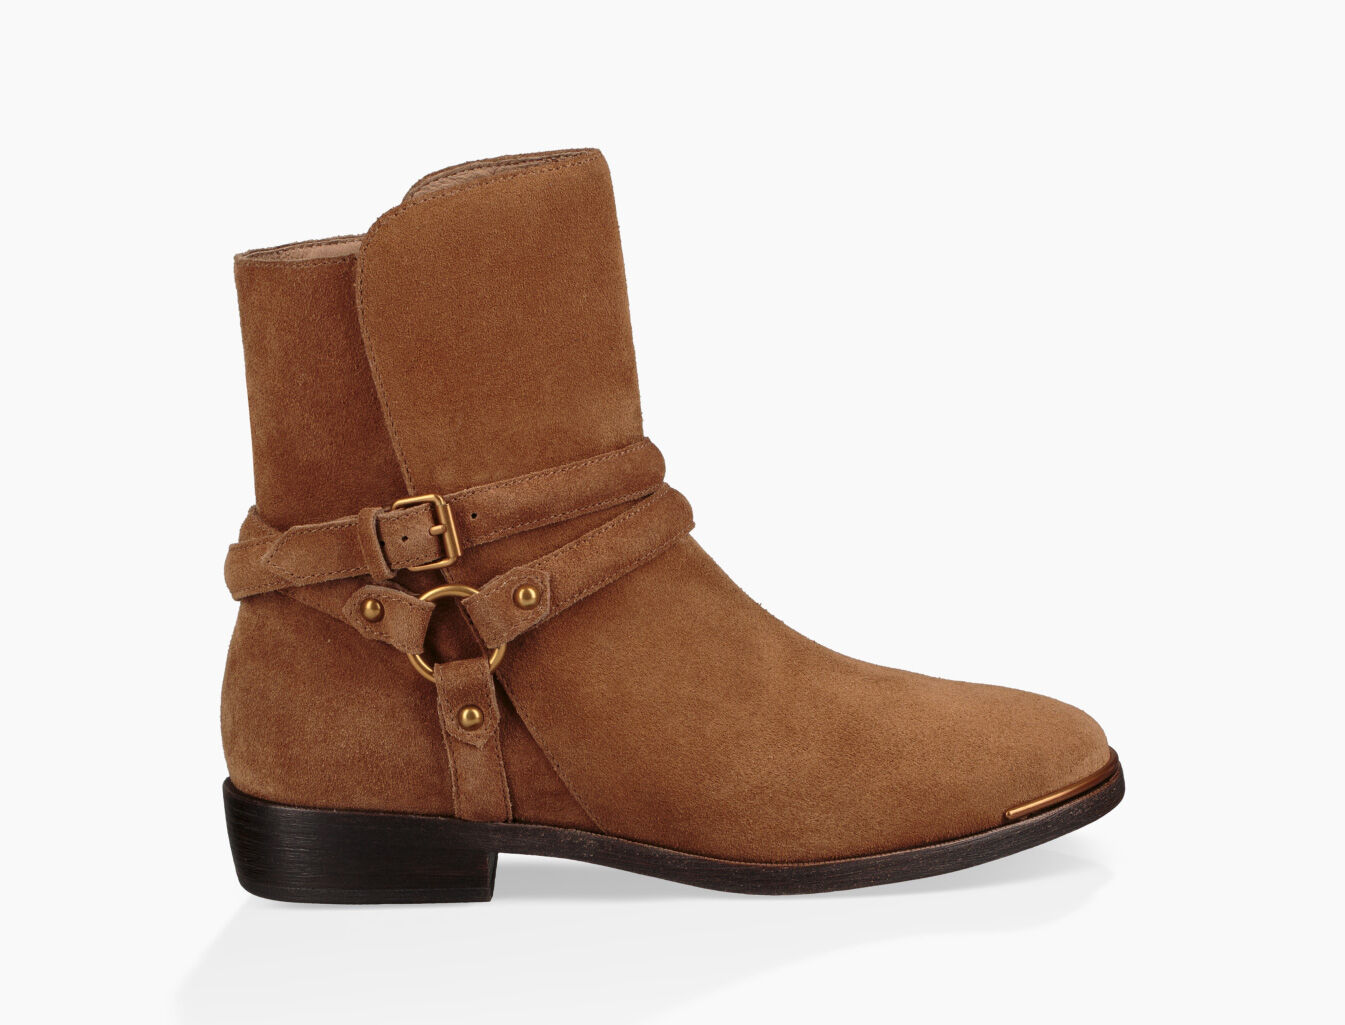 UGG Kelby Harness Boot (Women's) OVJfST